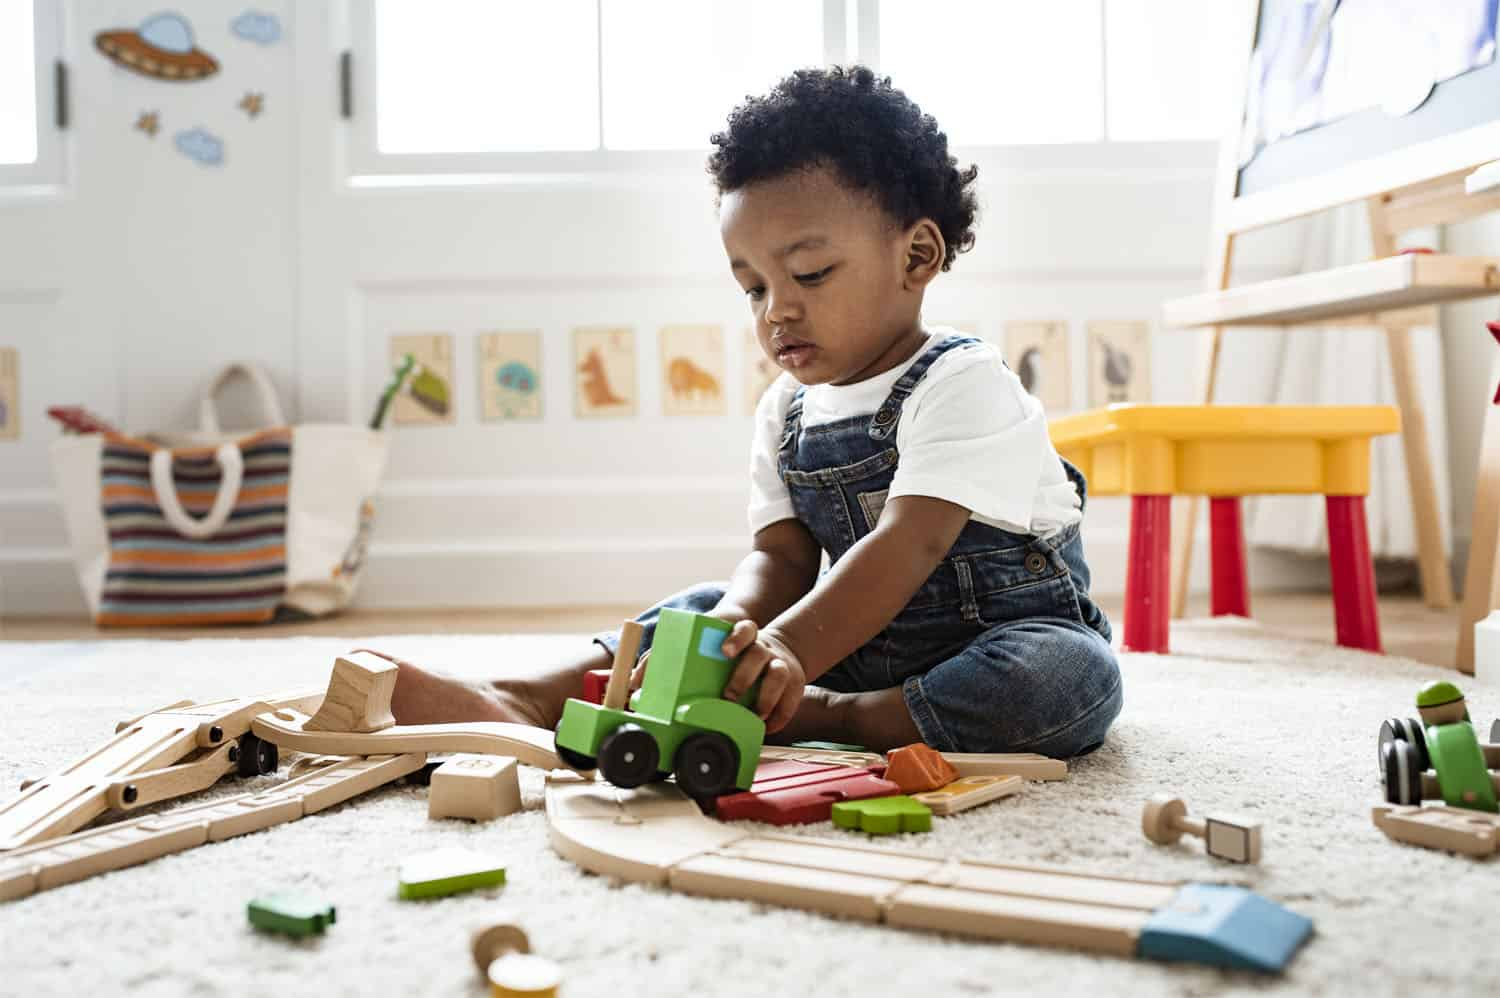 Child playing with a toy train set